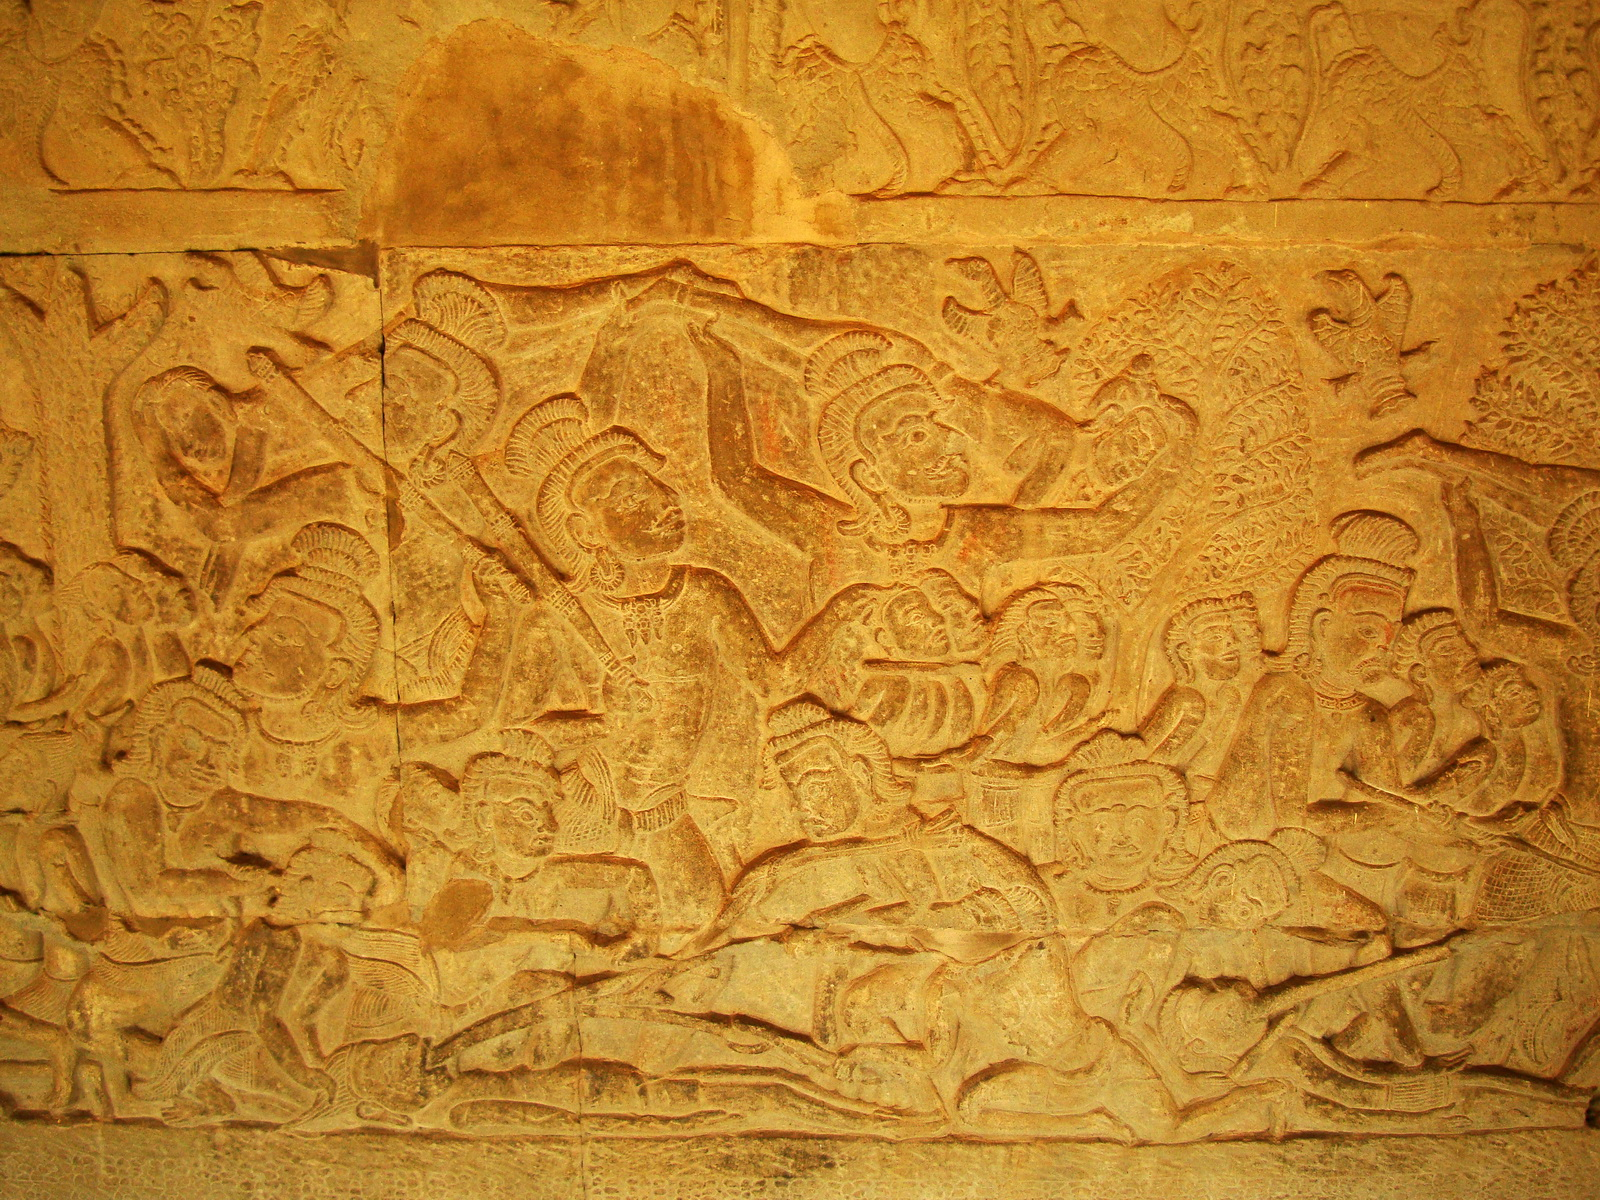 Angkor Wat Bas relief S Gallery E Wing Heavens and Hells 73